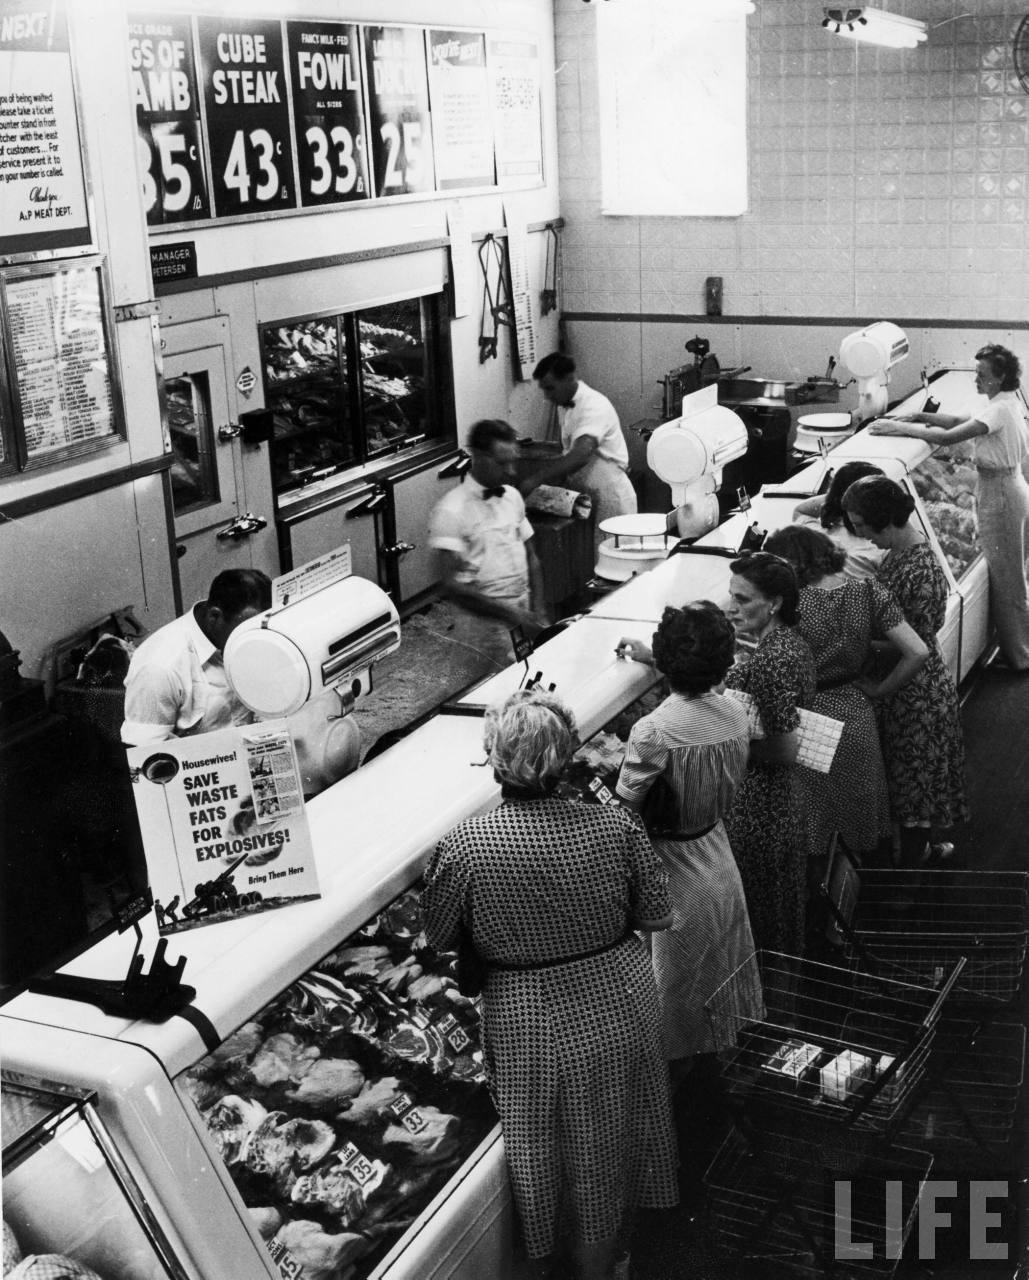 Shoppers at the butcher counter of A&P grocery store. Garden City, 1942. By Alfred Eisenstaedt